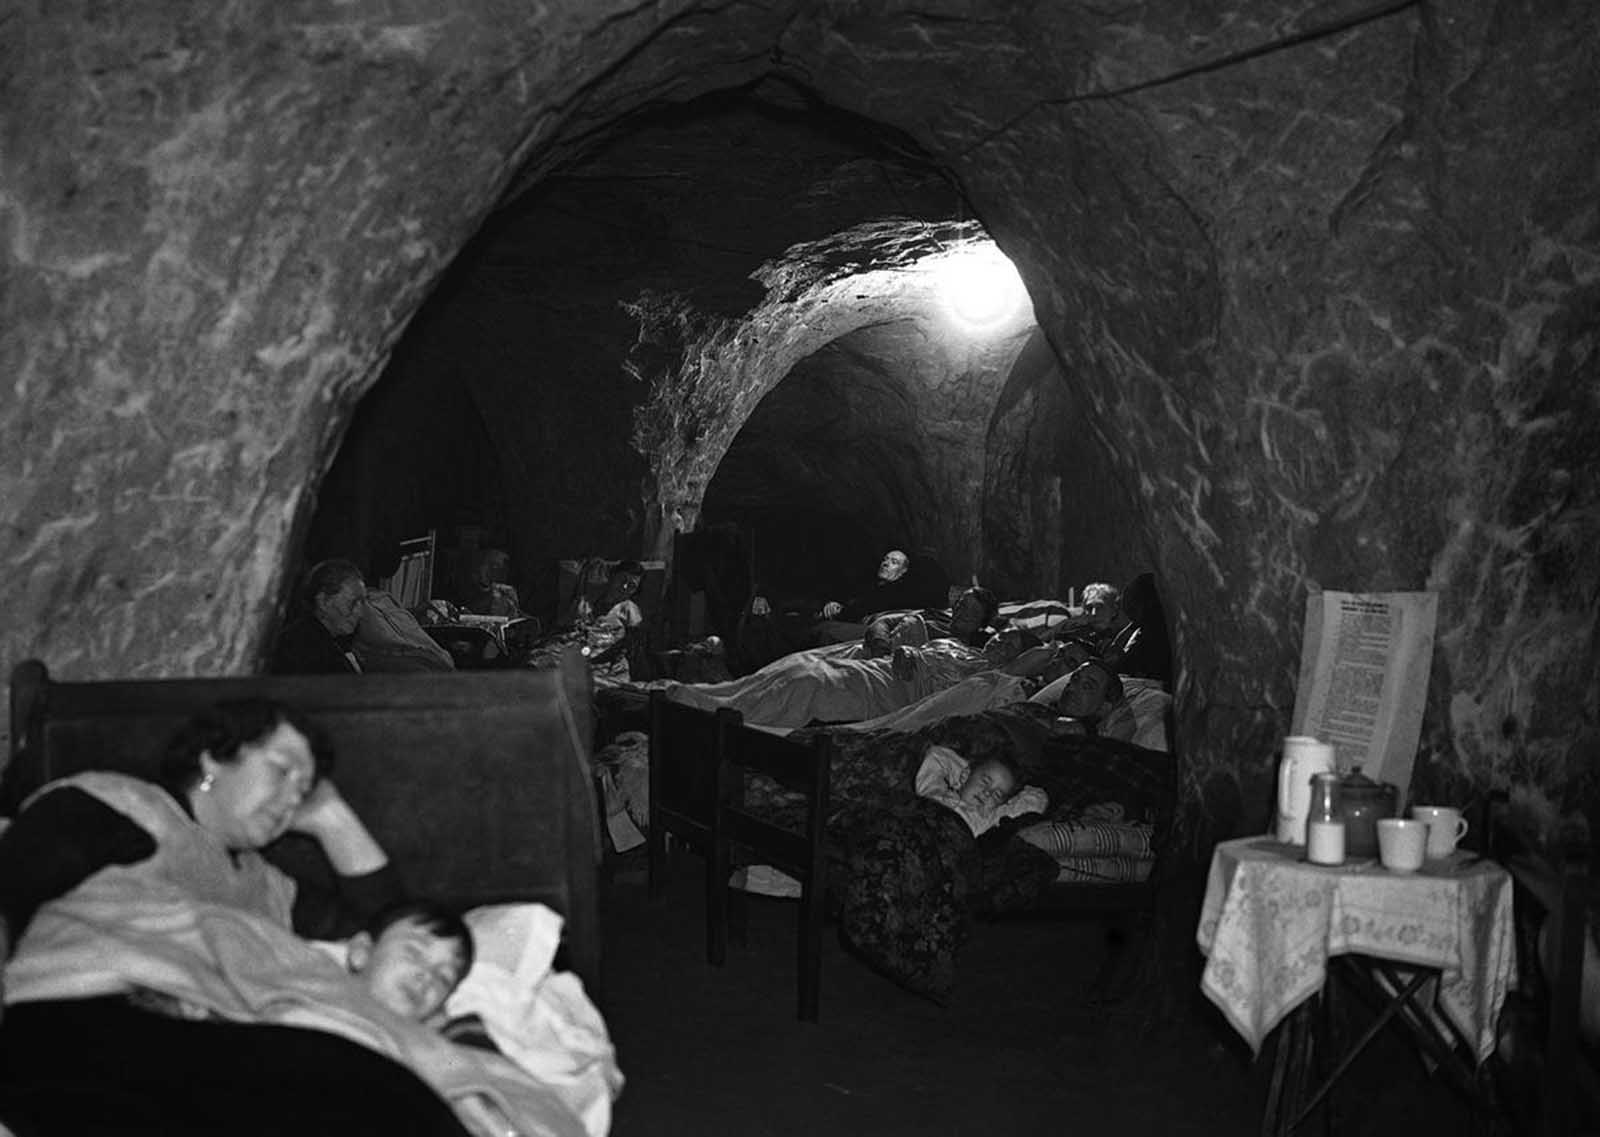 Hundreds of people, many of whom have lost their homes through bombing, now use the caves in Hastings, a south-east English town as their nightly refuge. Special sections are reserved for games and recreation, and several people have